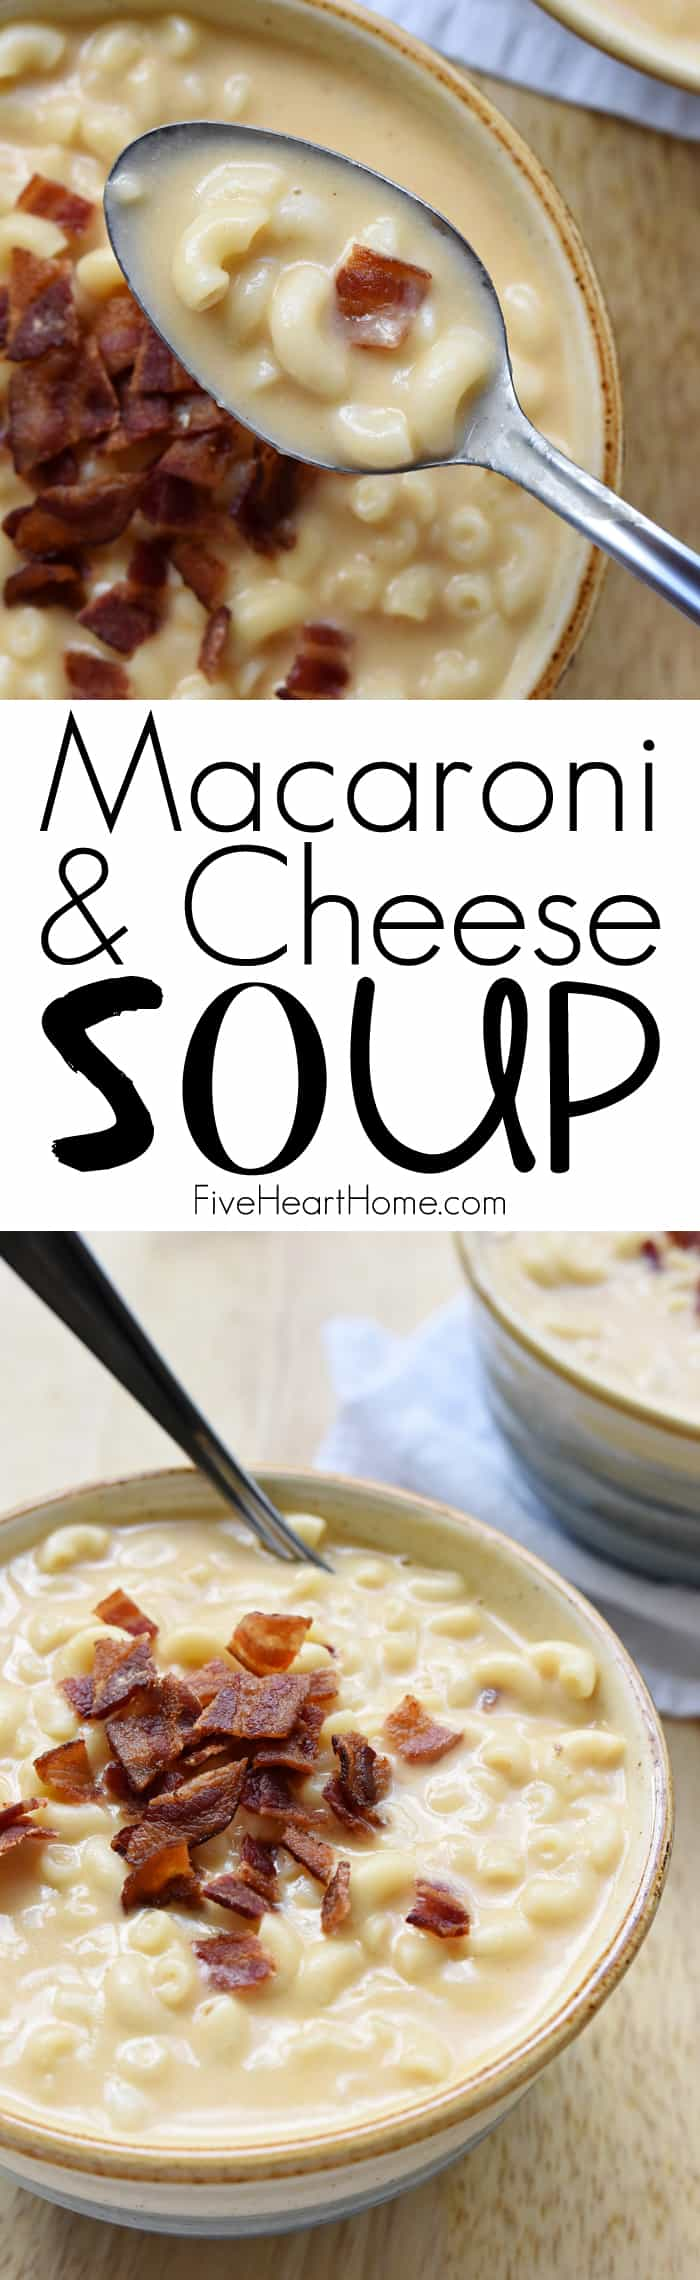 Macaroni & Cheese Soup Collage with Text Overlay